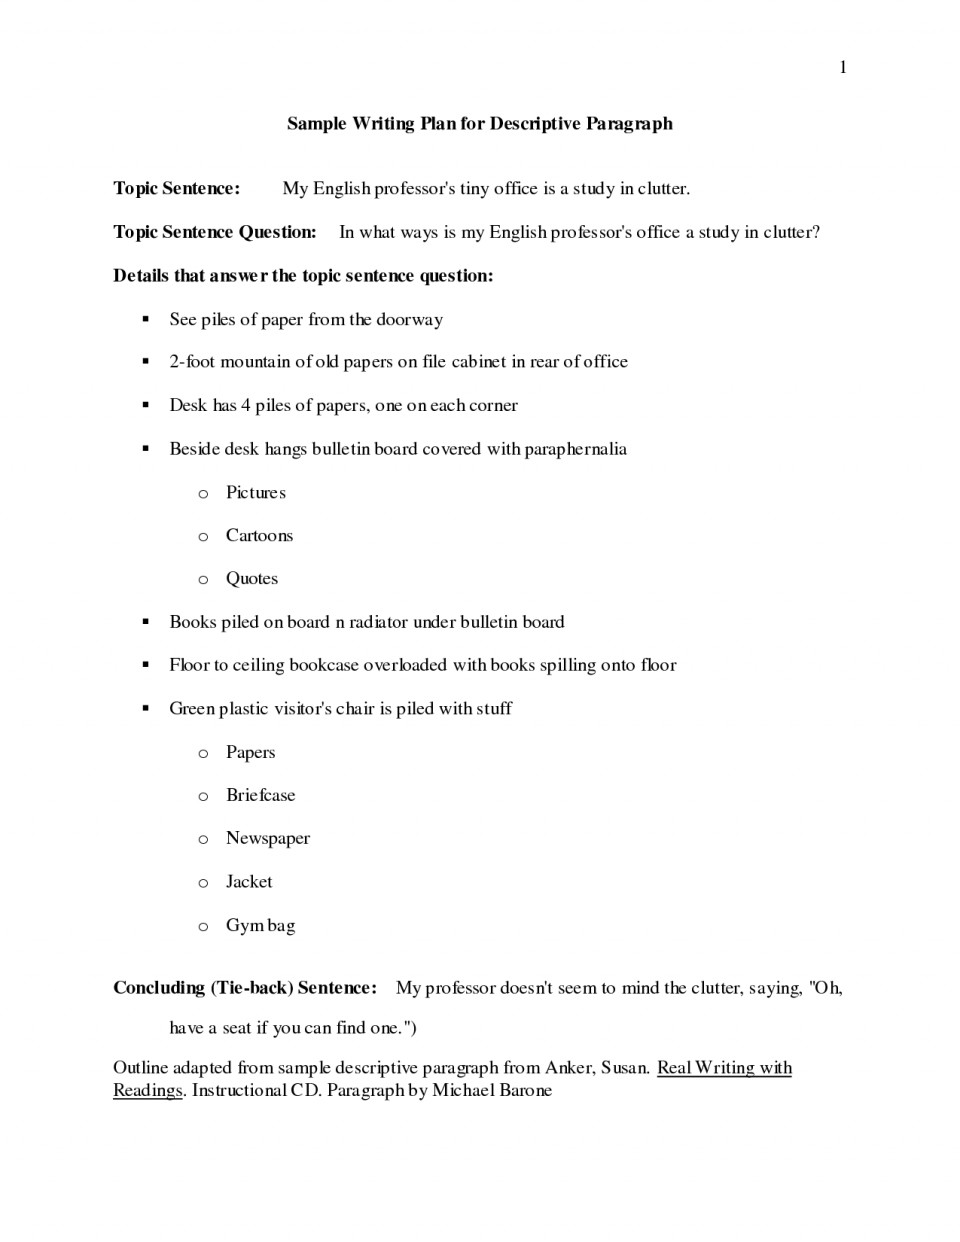 024 Essay Example Descriptive Outline Examples 448810 Impressive Writing Format Pdf About A Place You Have Visited Introduction Paragraph 960